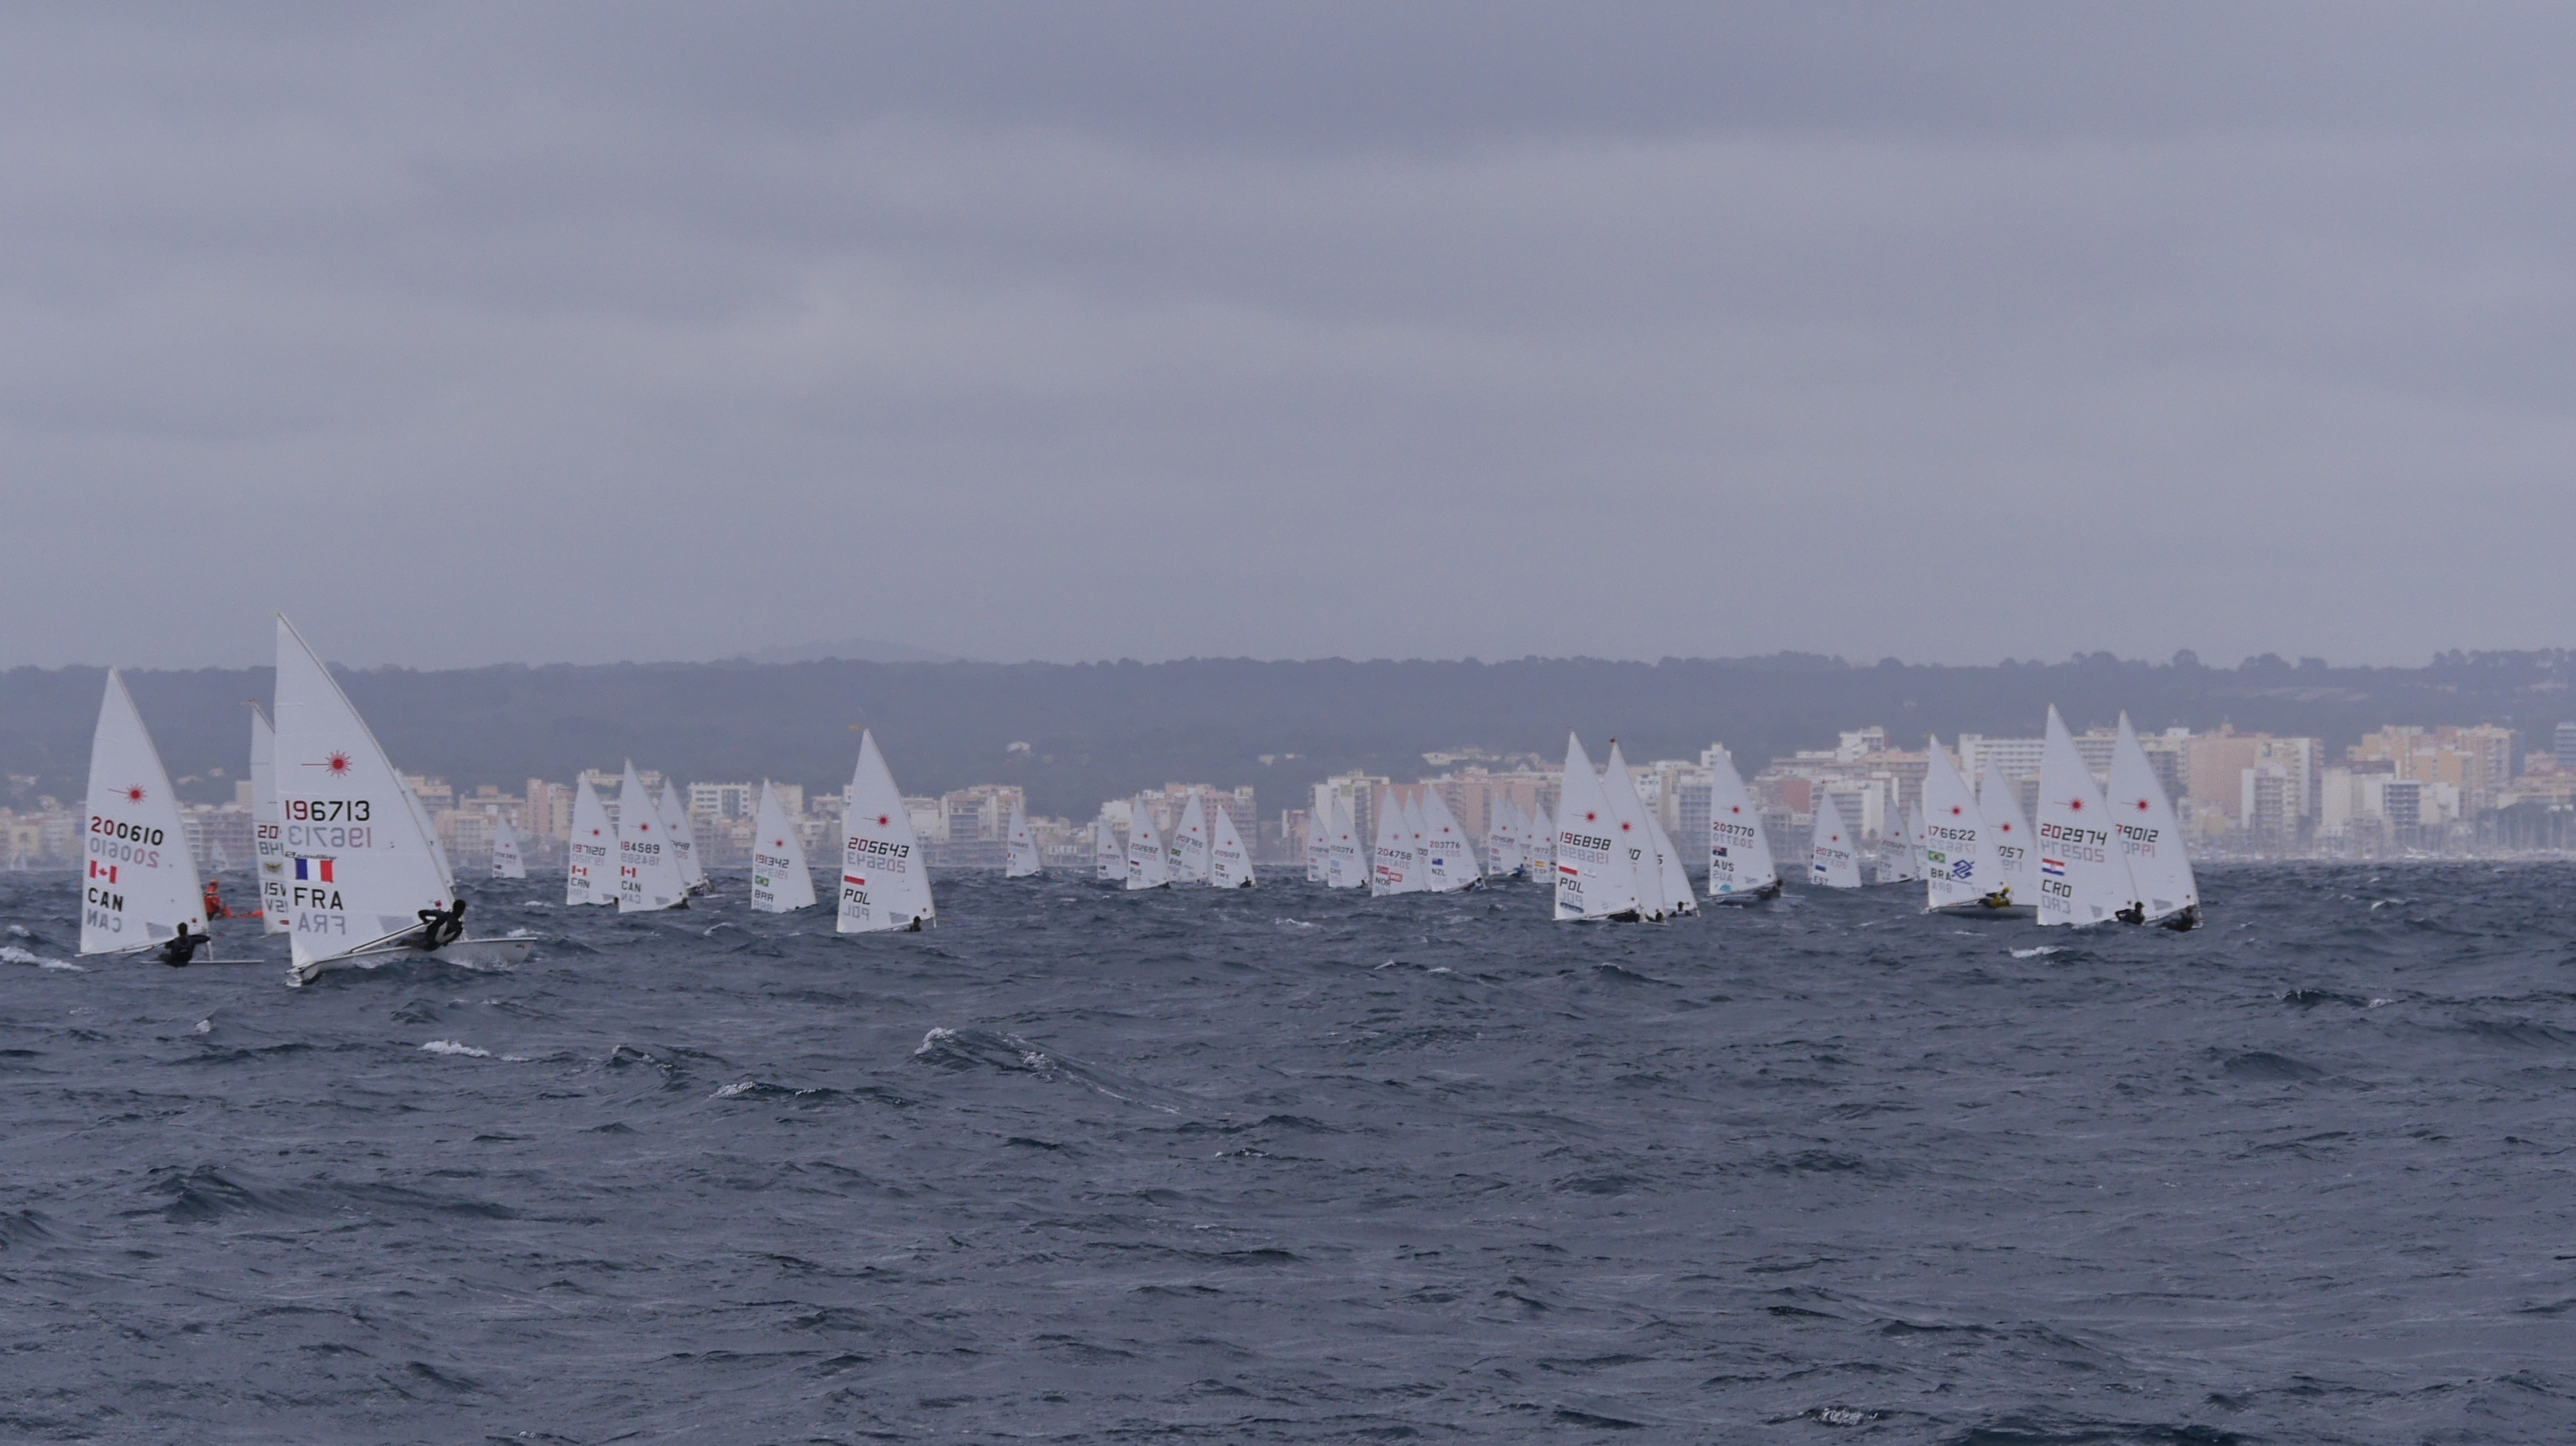 Strong winds on day 4!  I'm some where in there